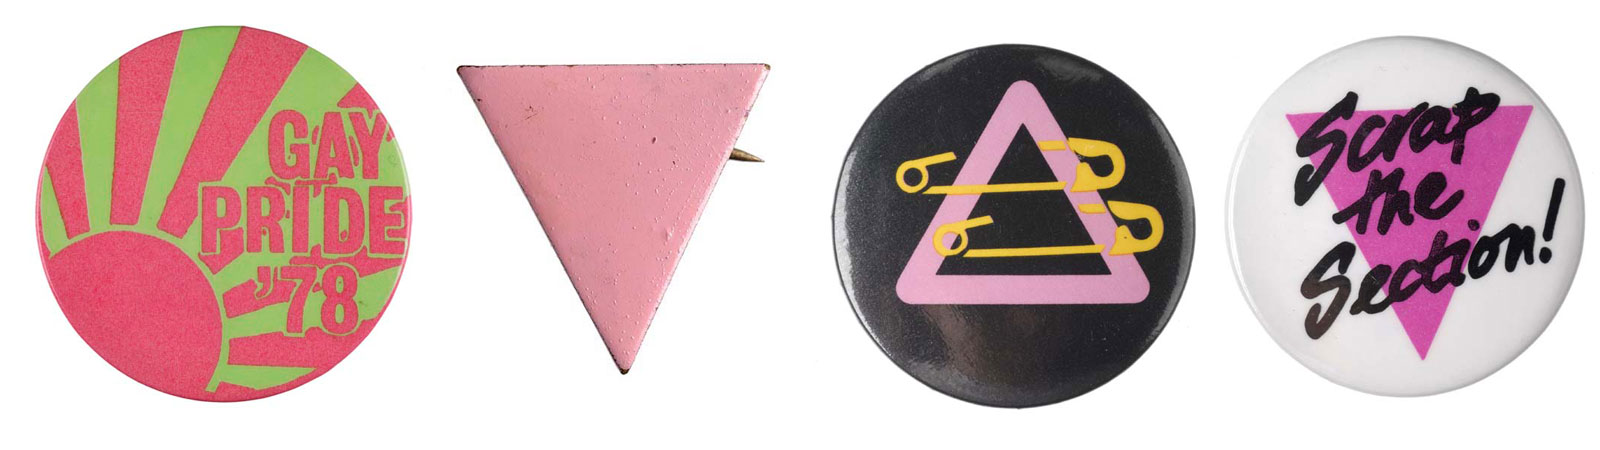 The pink triangle emblem is a reference to the cloth badges that homosexual prisoners were forced to wear on their uniforms in Nazi concentration camps.